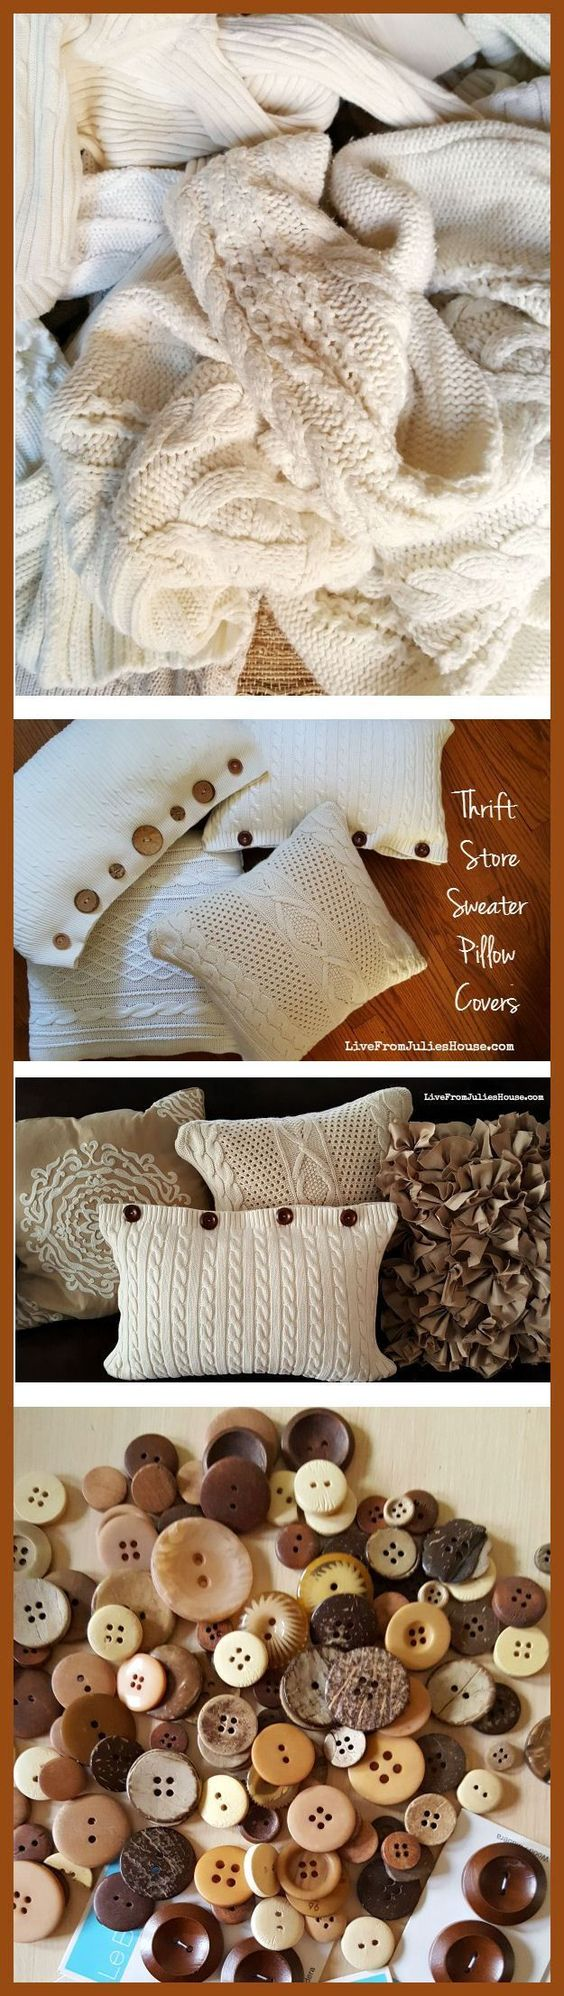 Thrift Store Sweater Pillow Covers  - Create cozy pillow covers out of thrift store sweaters with my easy tutorial - no major sewing skills required!